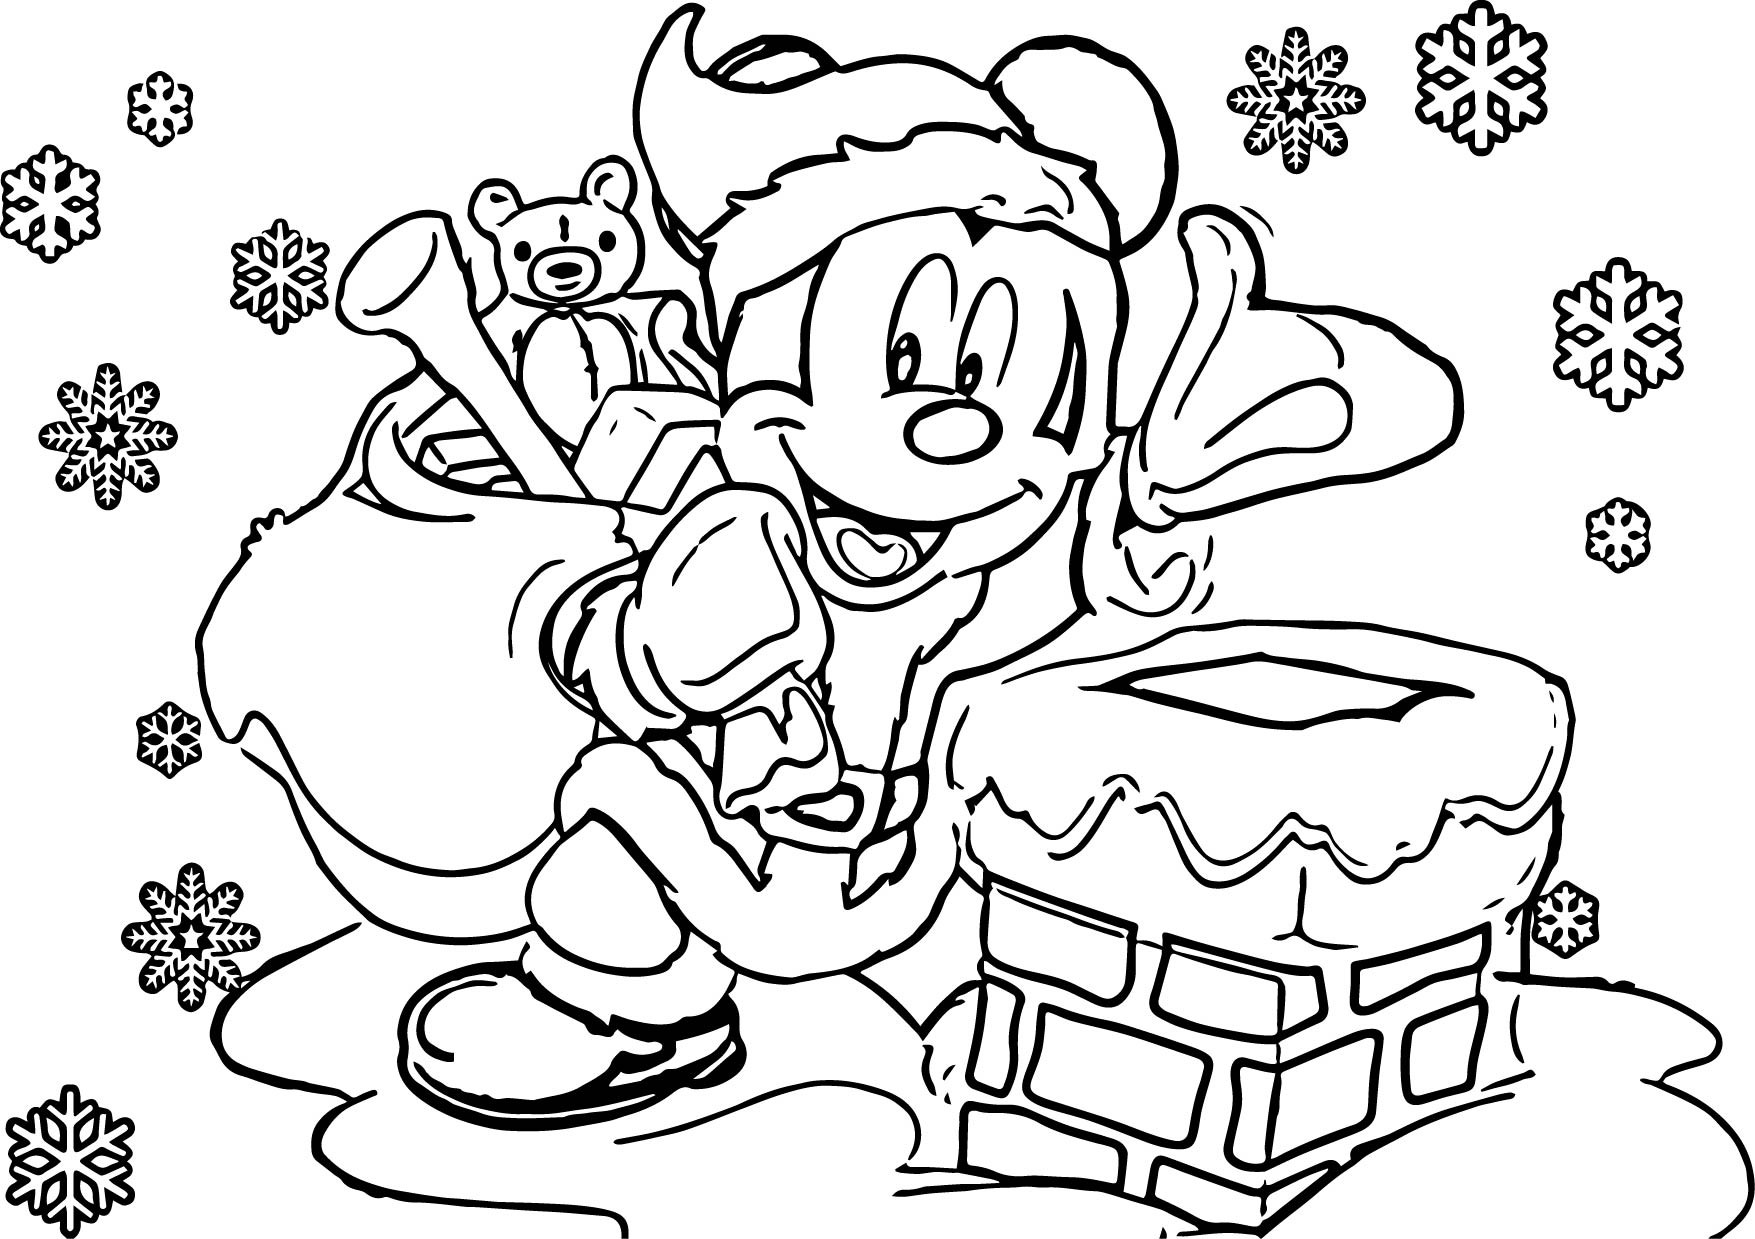 1755x1239 Coloring Pages Christmas Scene New Free Printable To Color Kids